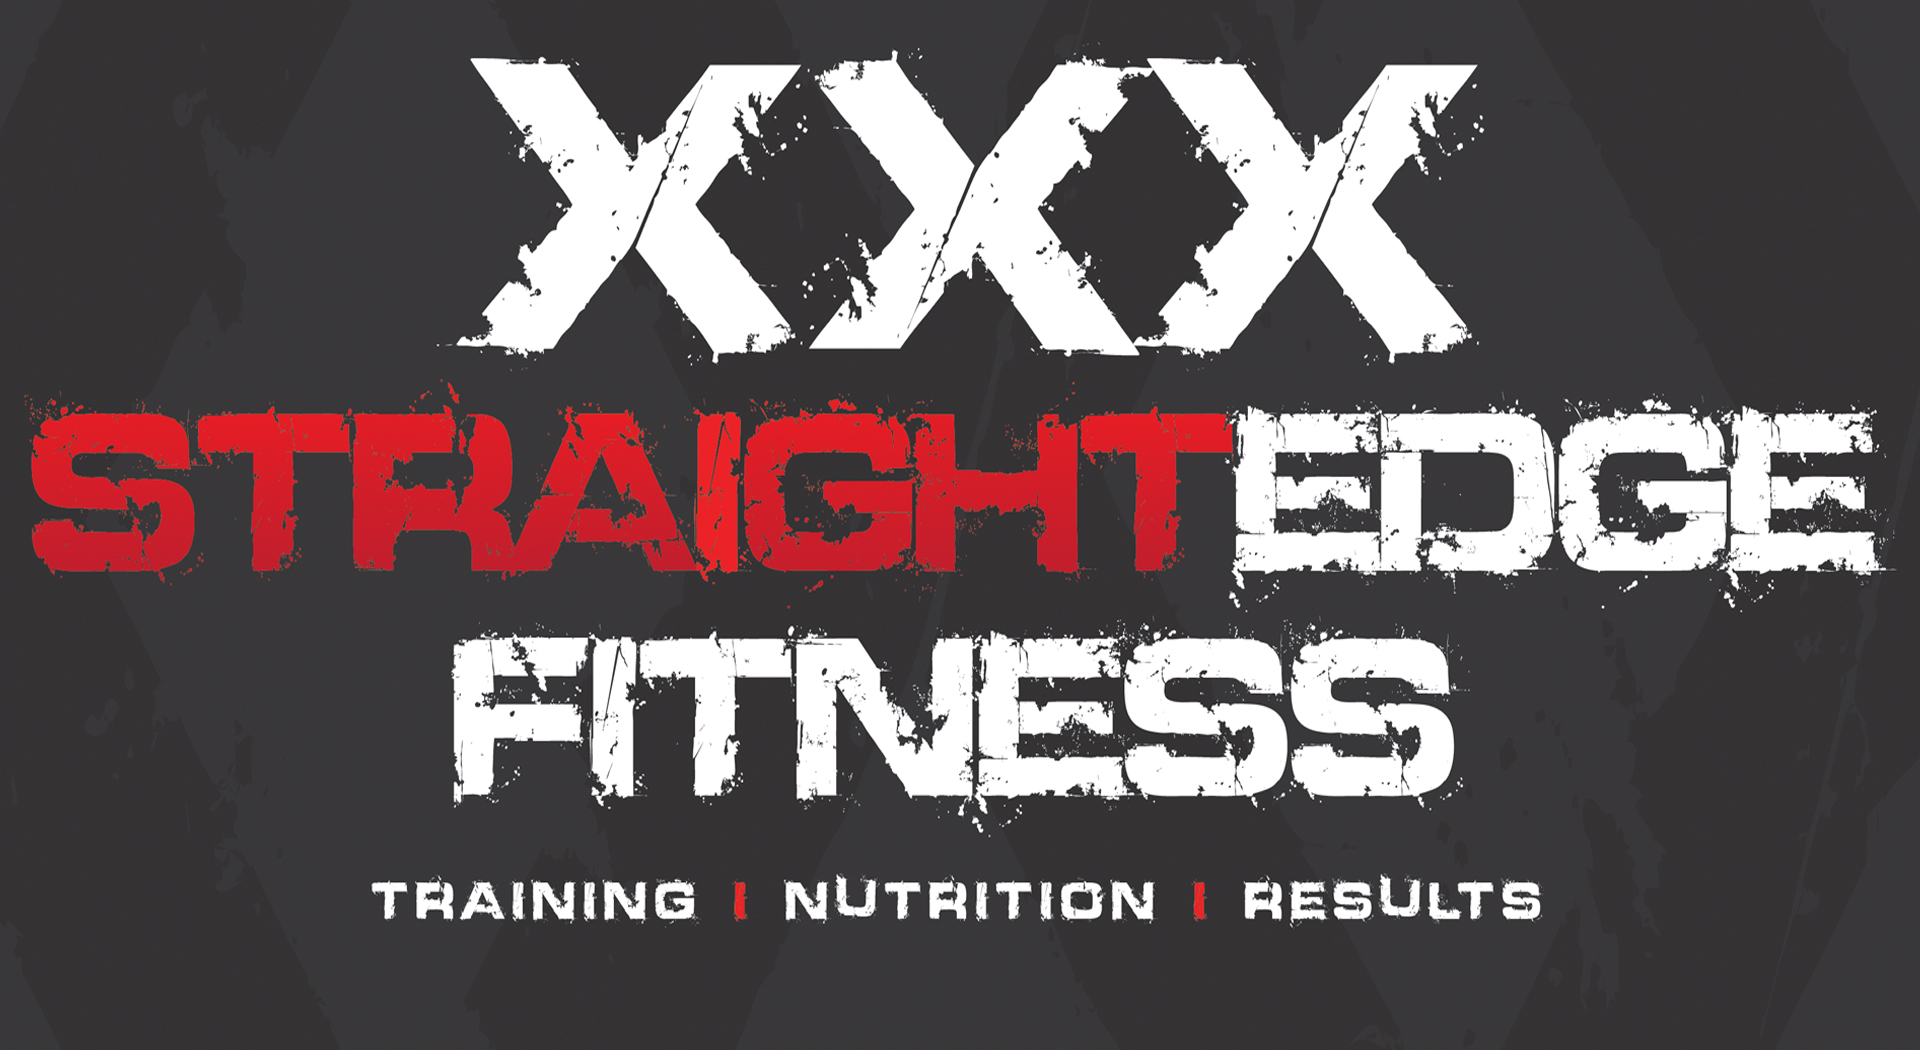 Straight Edge Fitness About Us